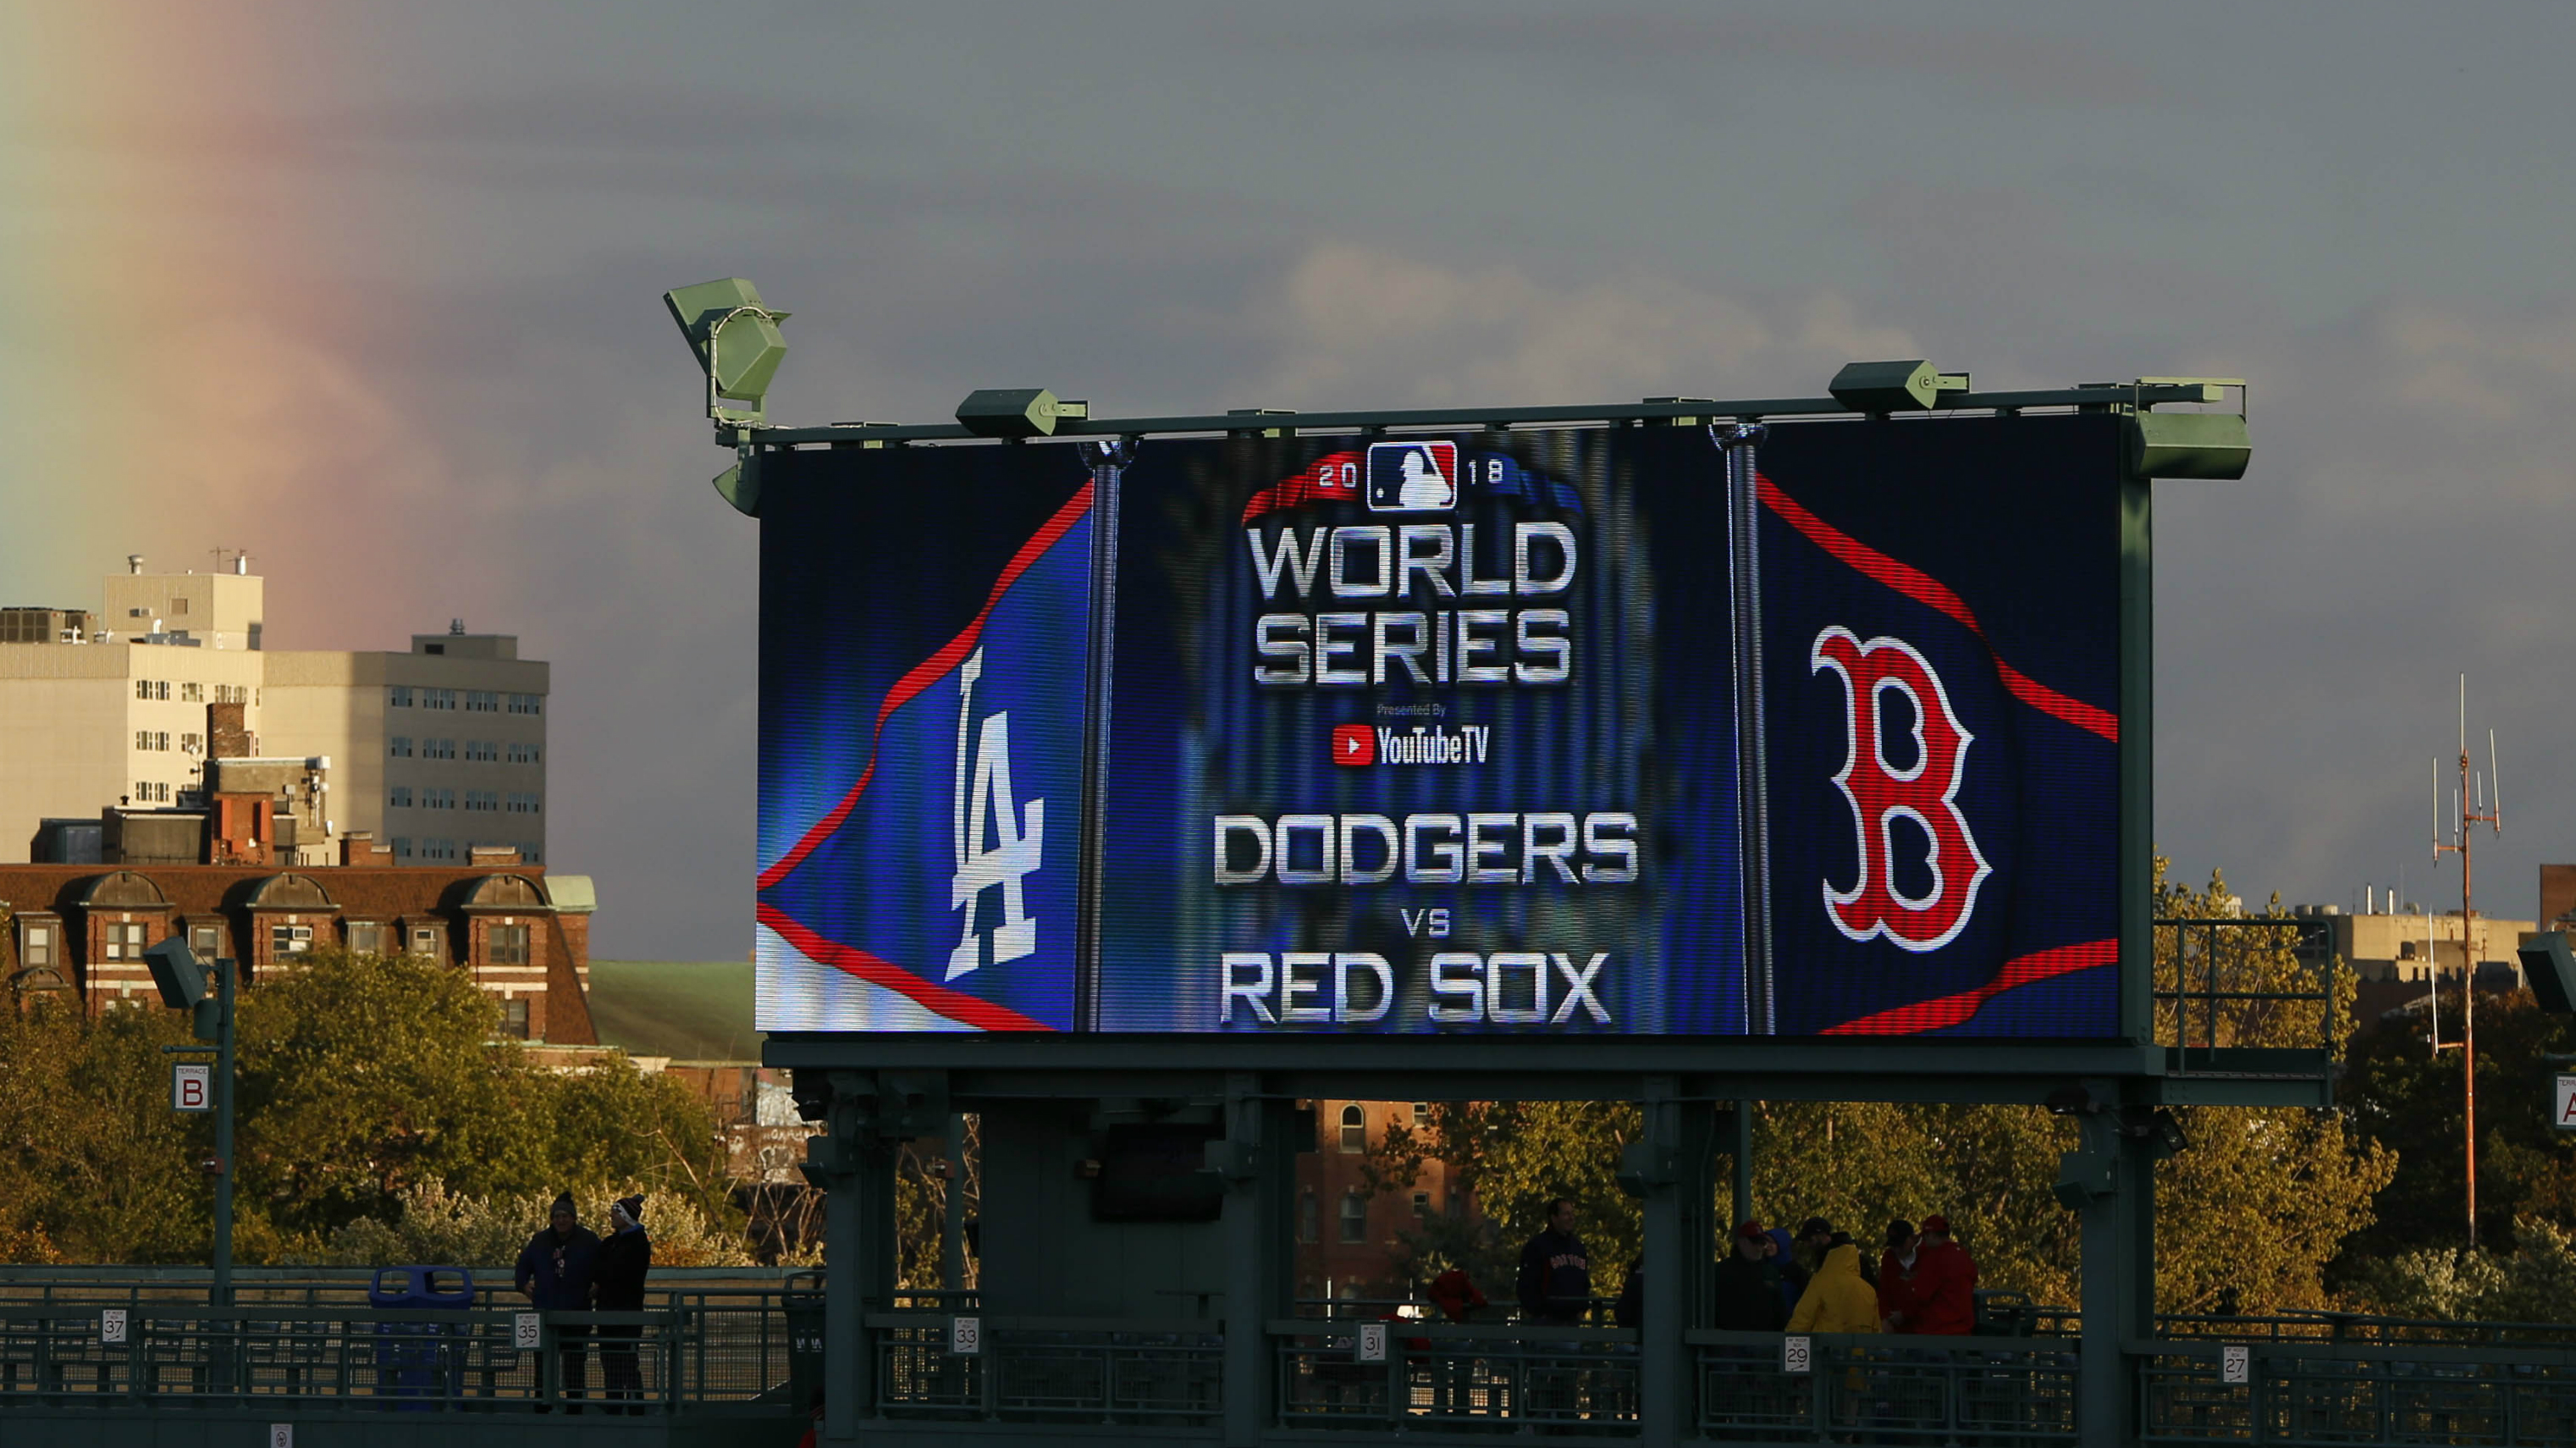 A billboard with the names of the teams playing in the 2018 World Series.